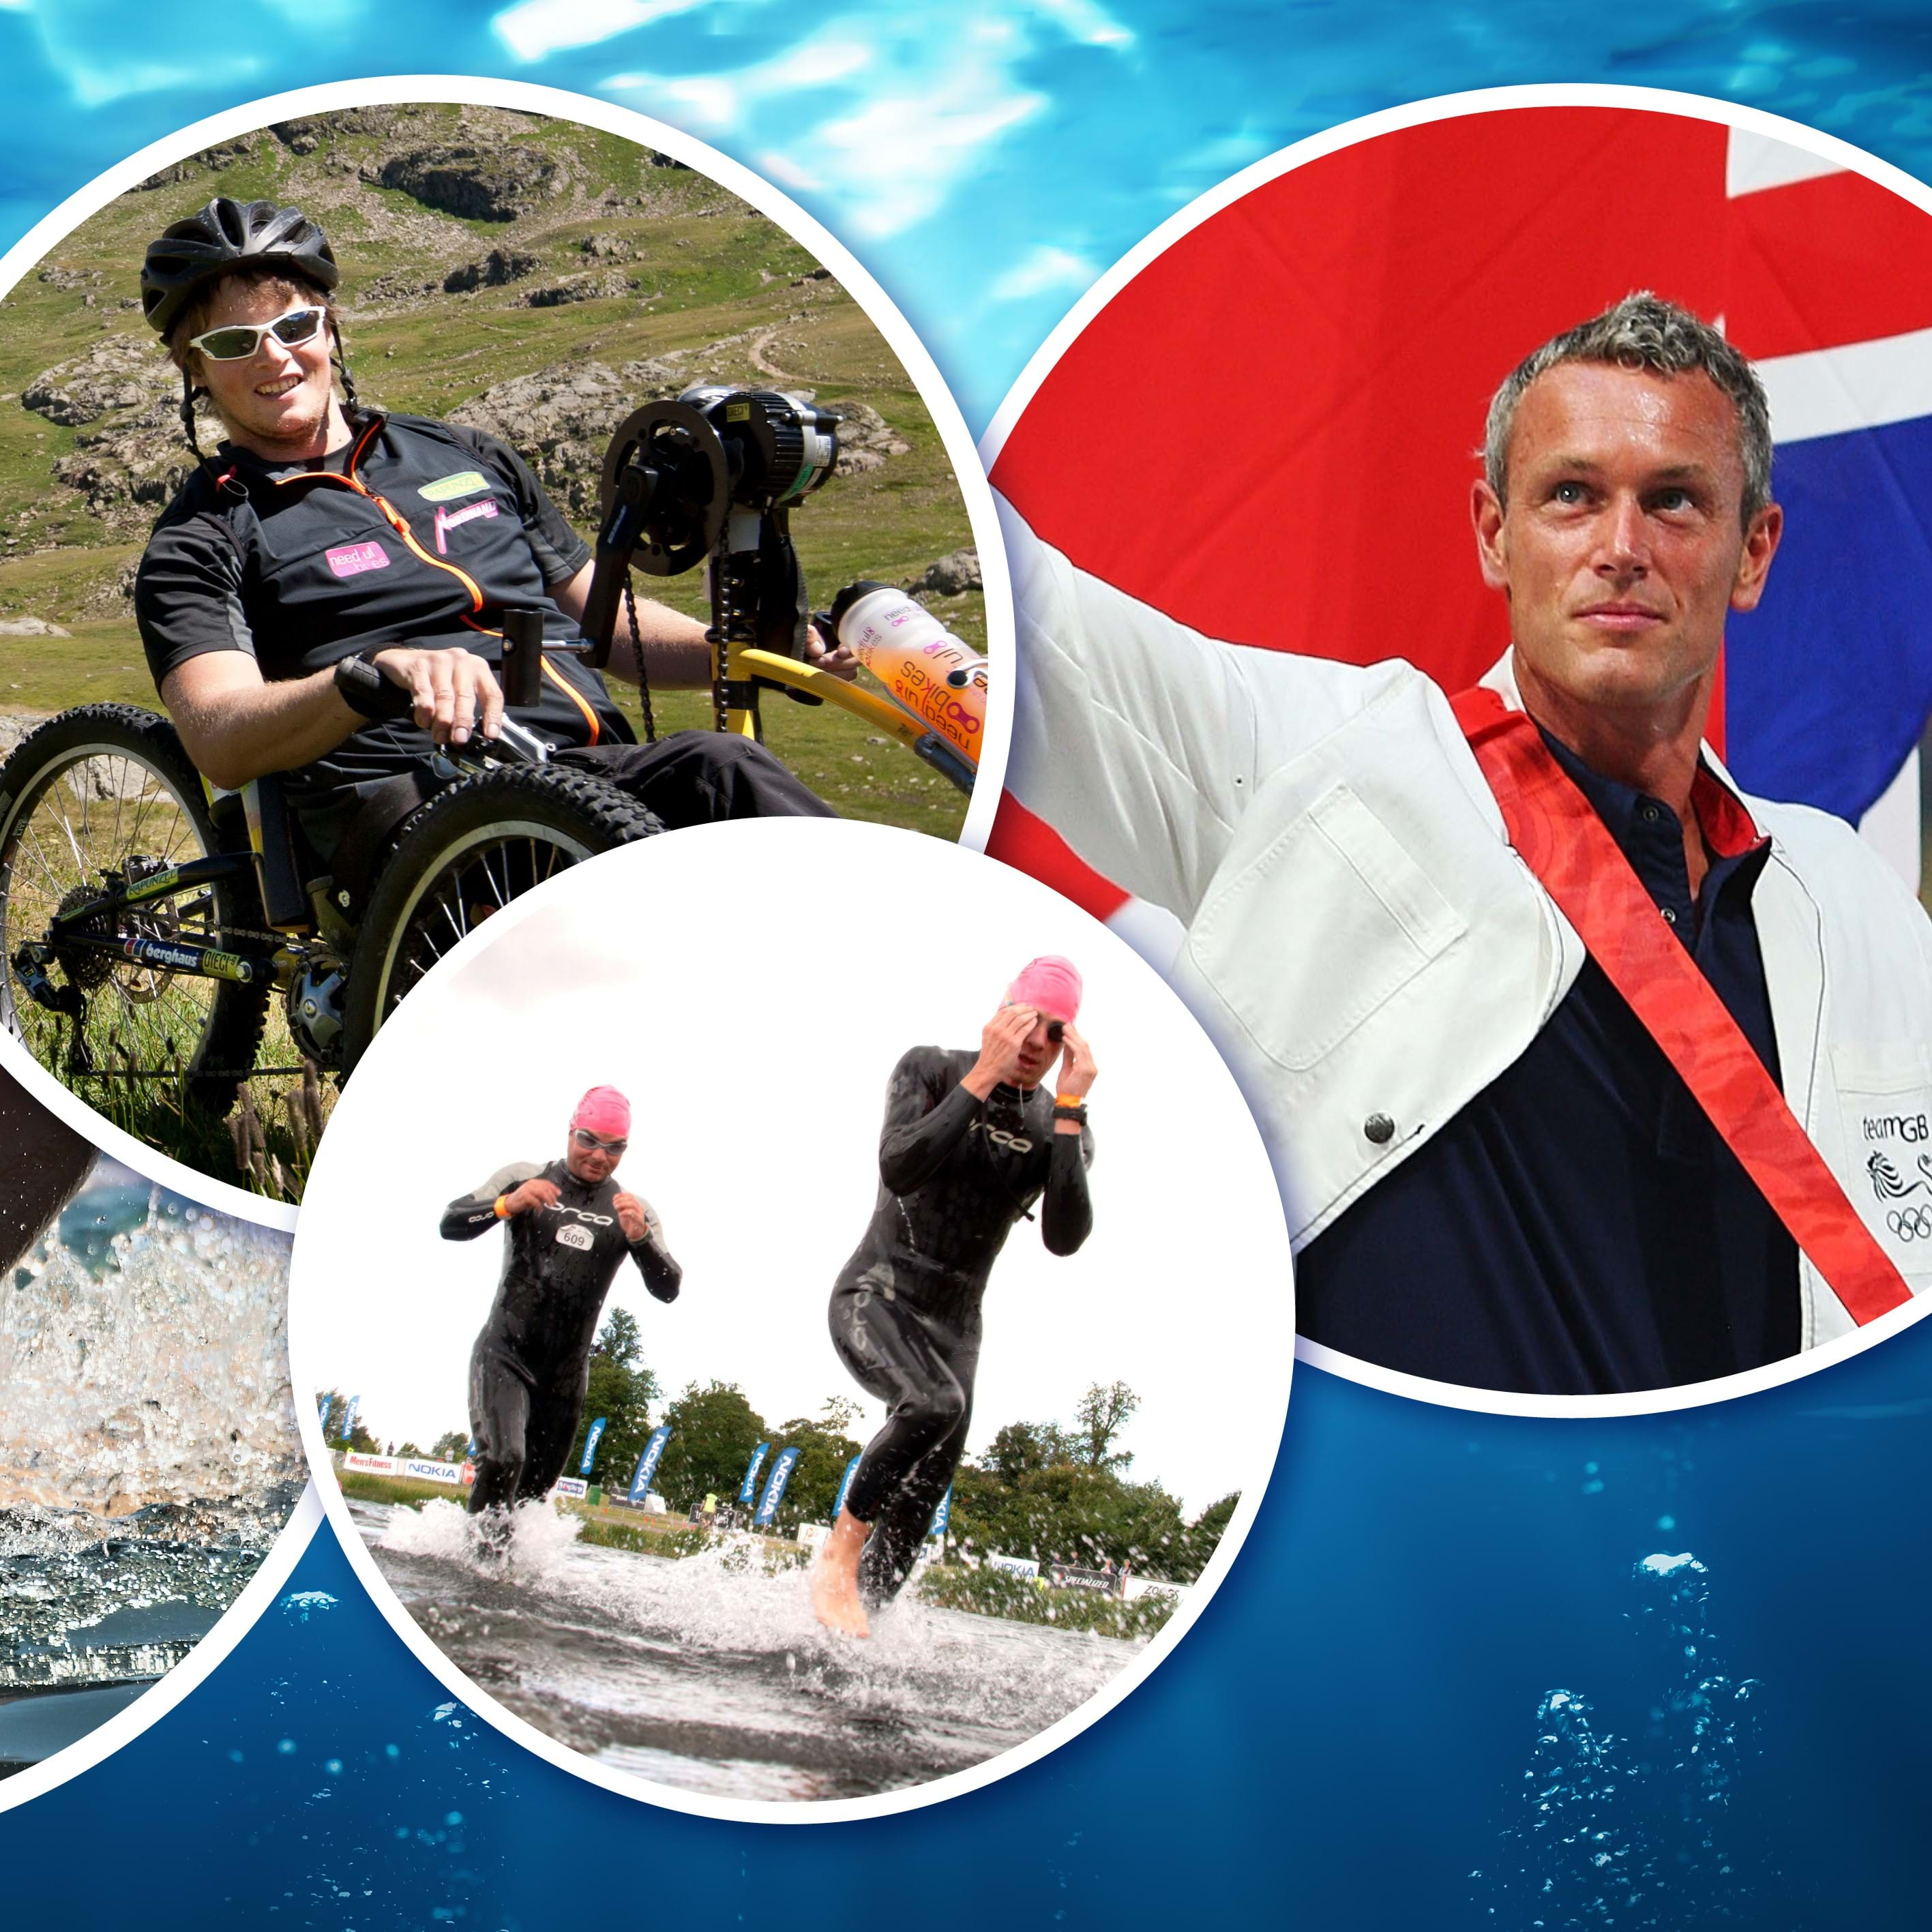 In at the Deep End 2020 banner, with images of swimmers in wetsuits at the Eton Dorney Lake, GB Olympic Swimmer, Mark Foster and tetraplegics